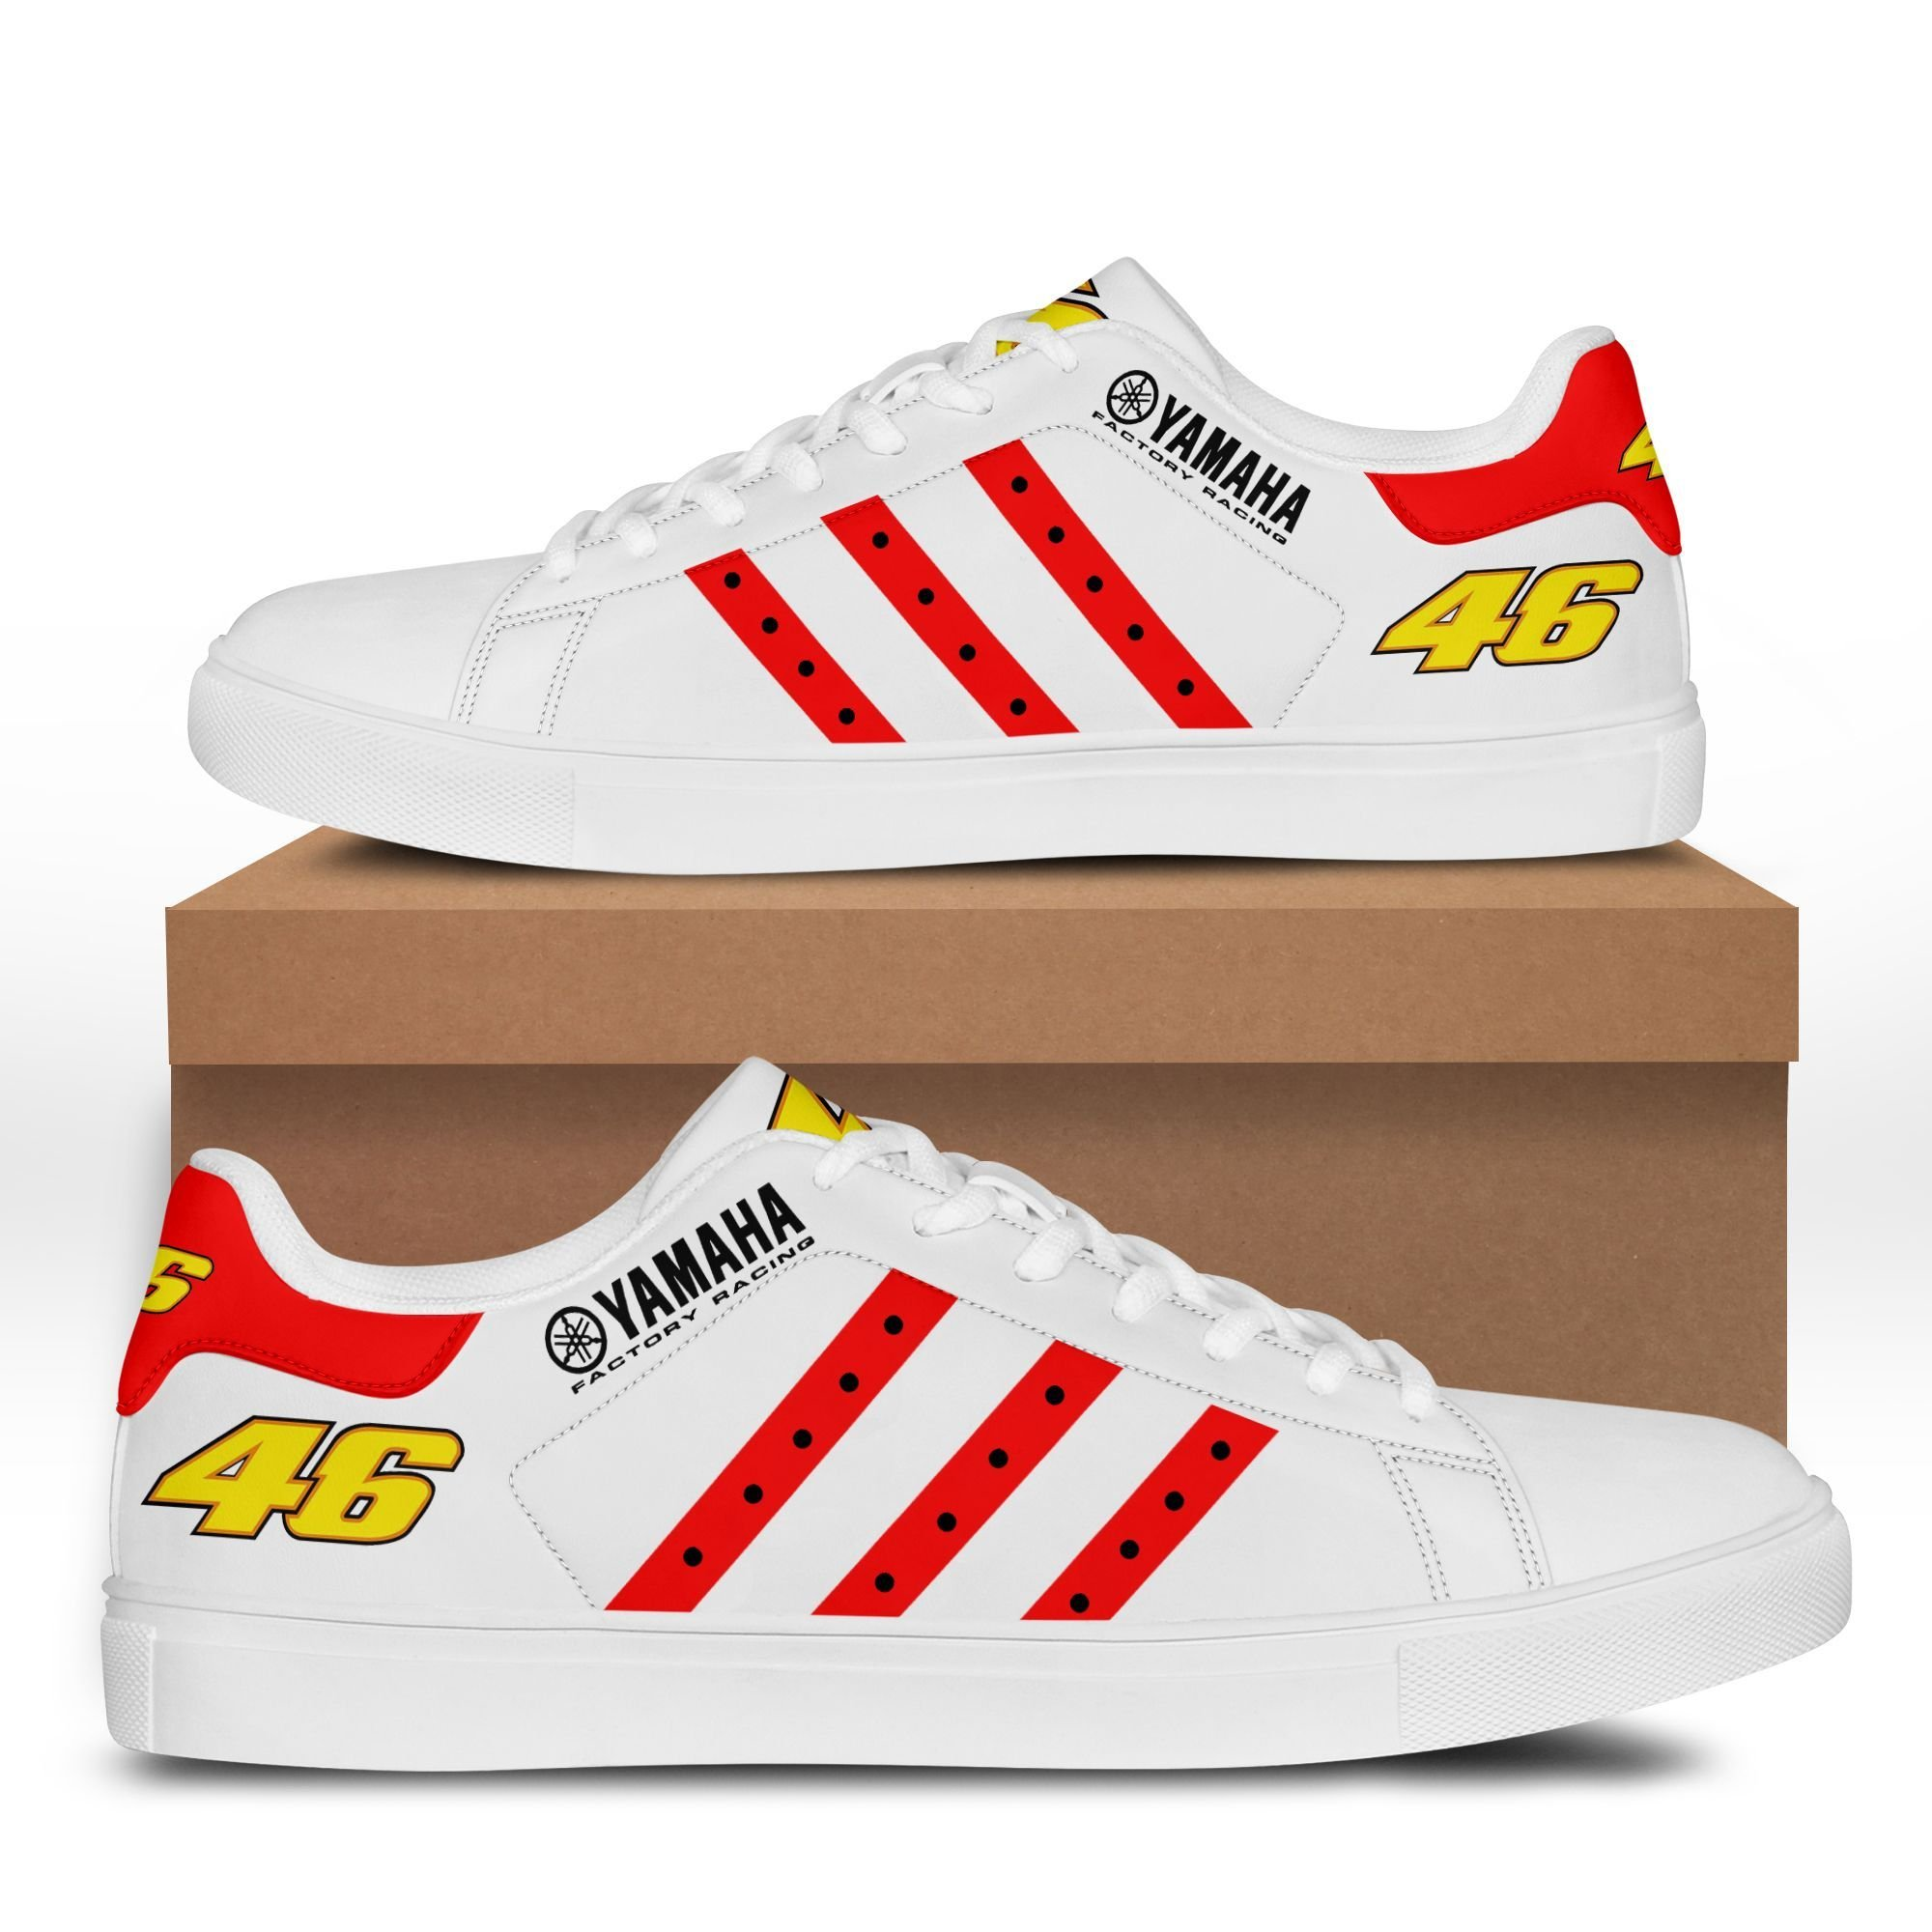 New Car Stan Smith Shoes collection